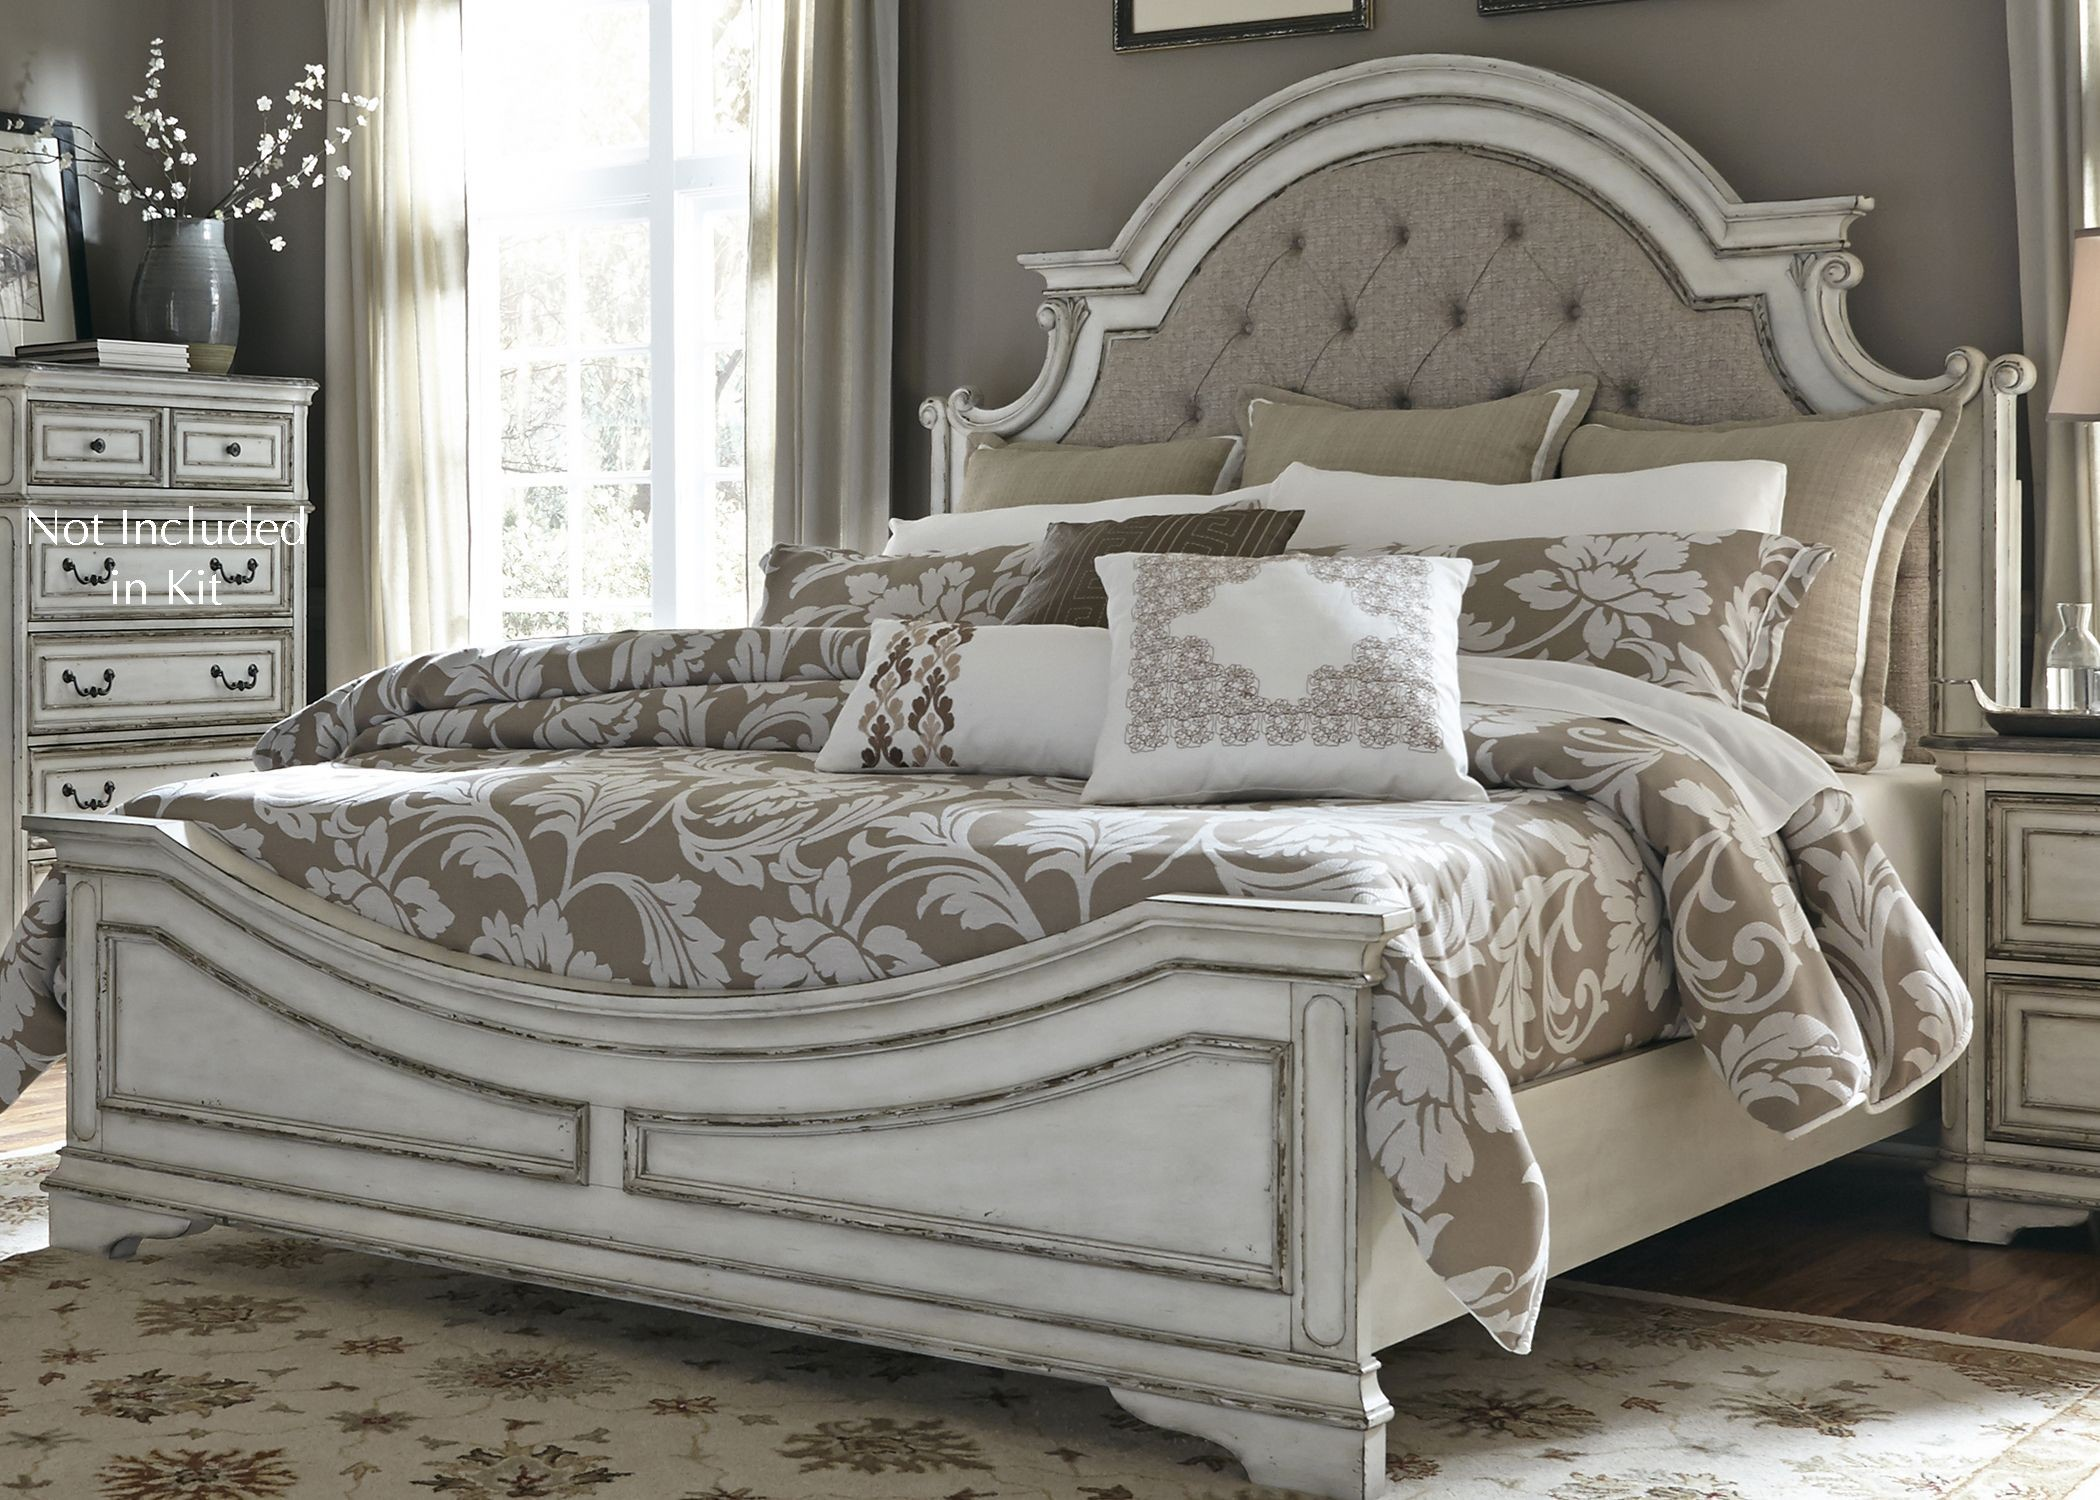 Magnolia manor antique white upholstered panel bedroom set for 3 6 bed